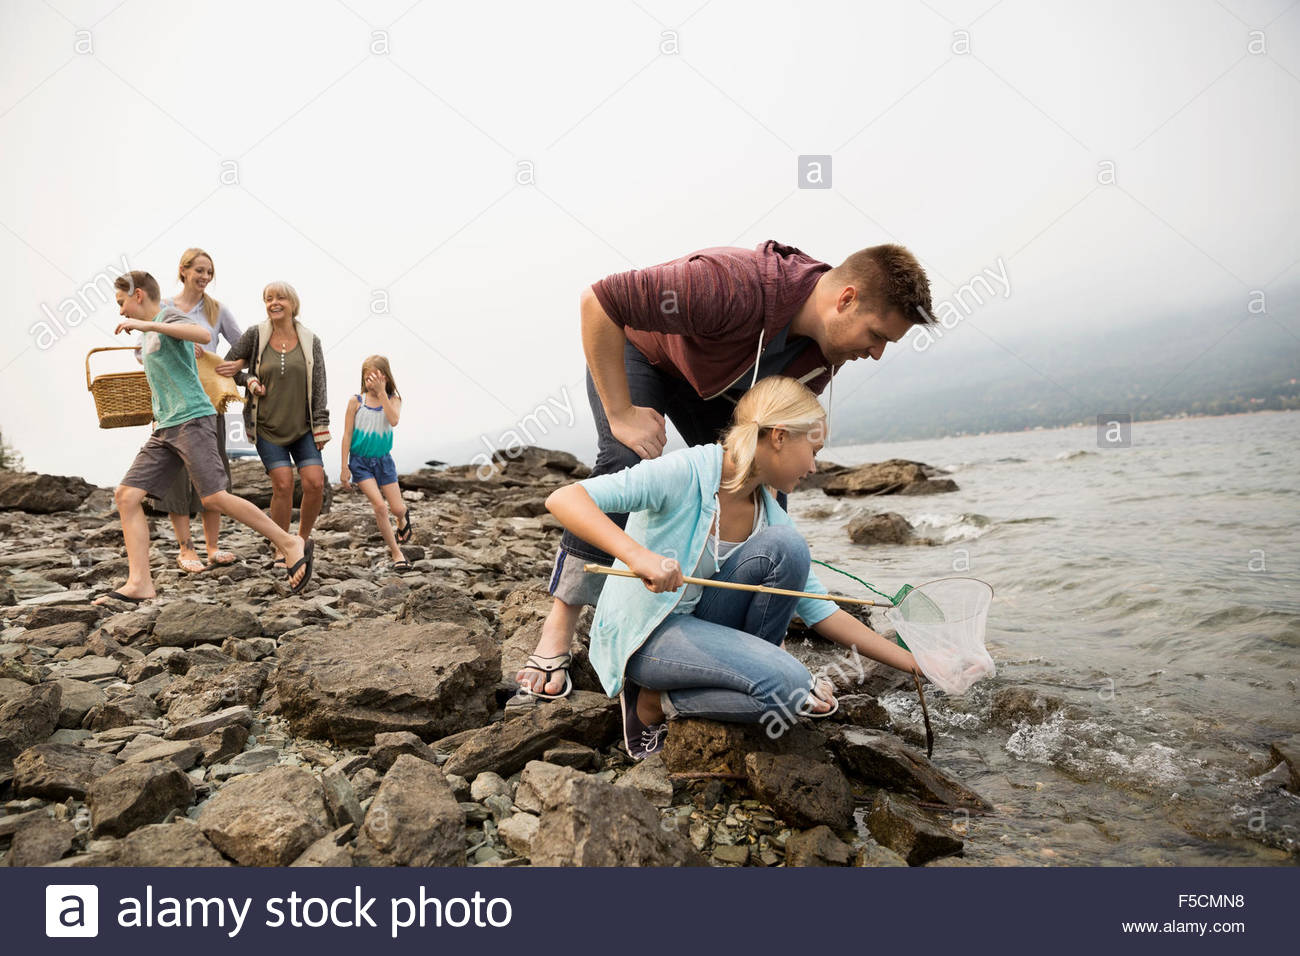 Father and daughter fishing with net craggy lakeside - Stock Image